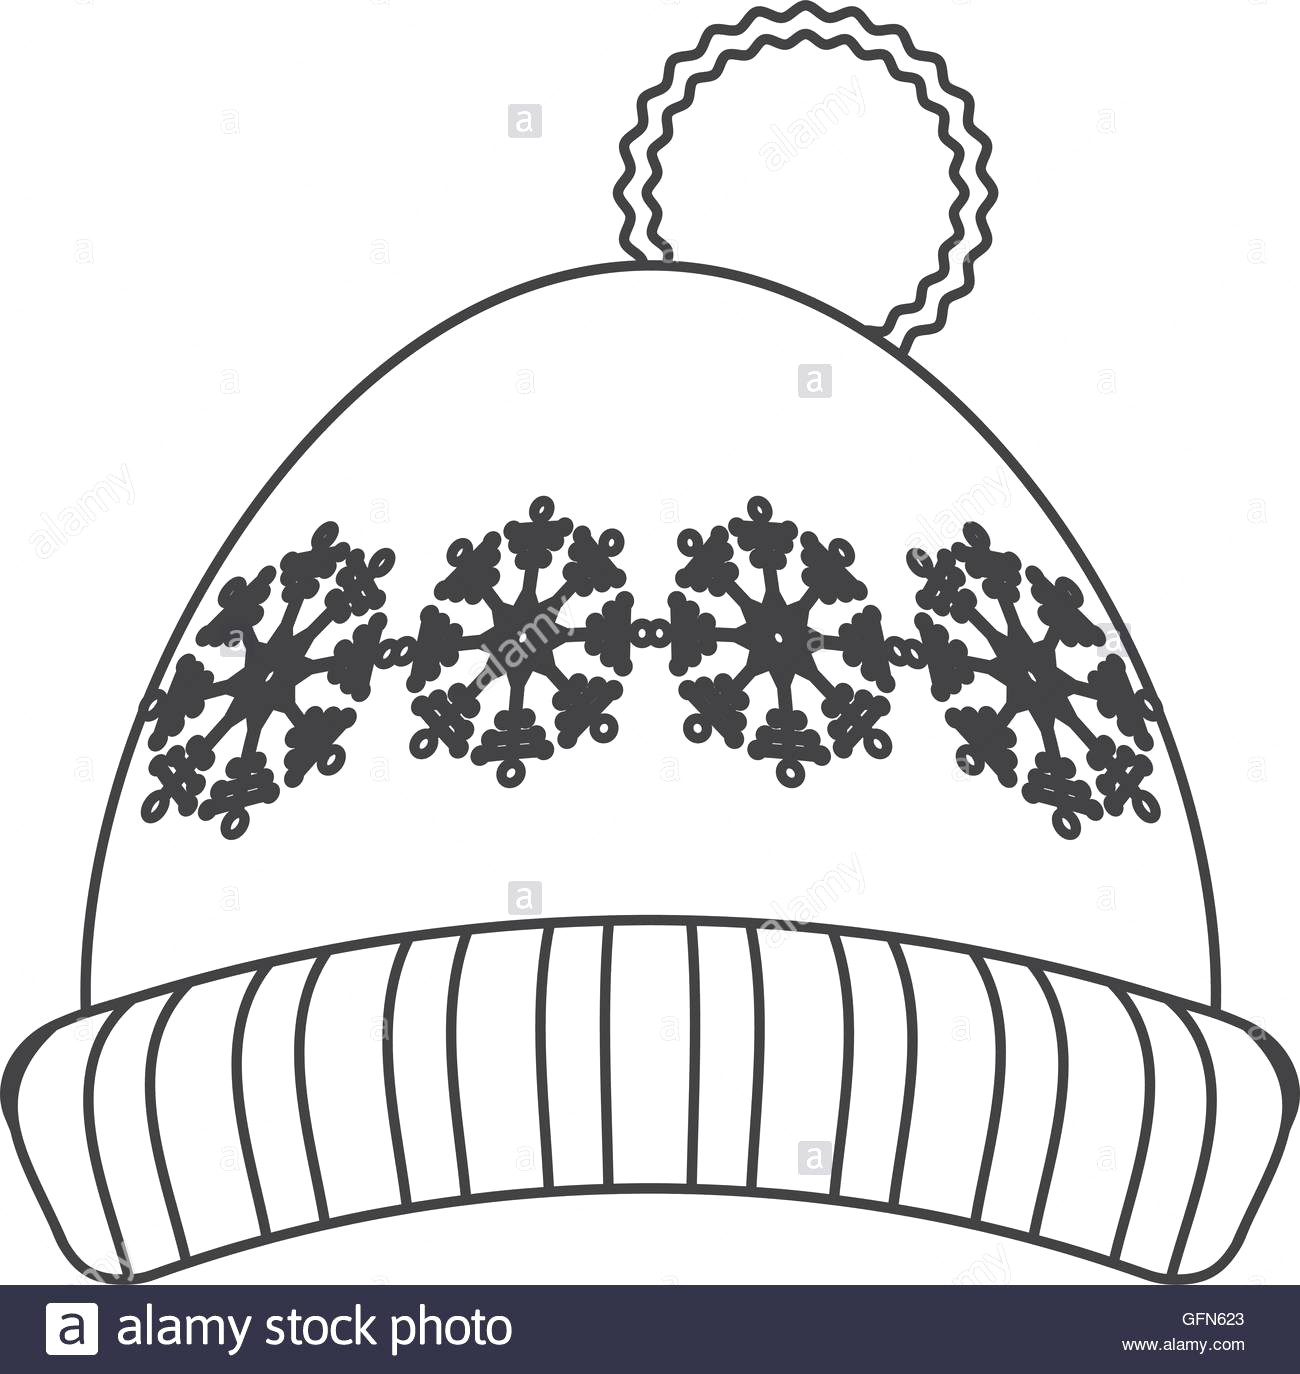 Cap clipart drawing. Winter hat rescuedesk me